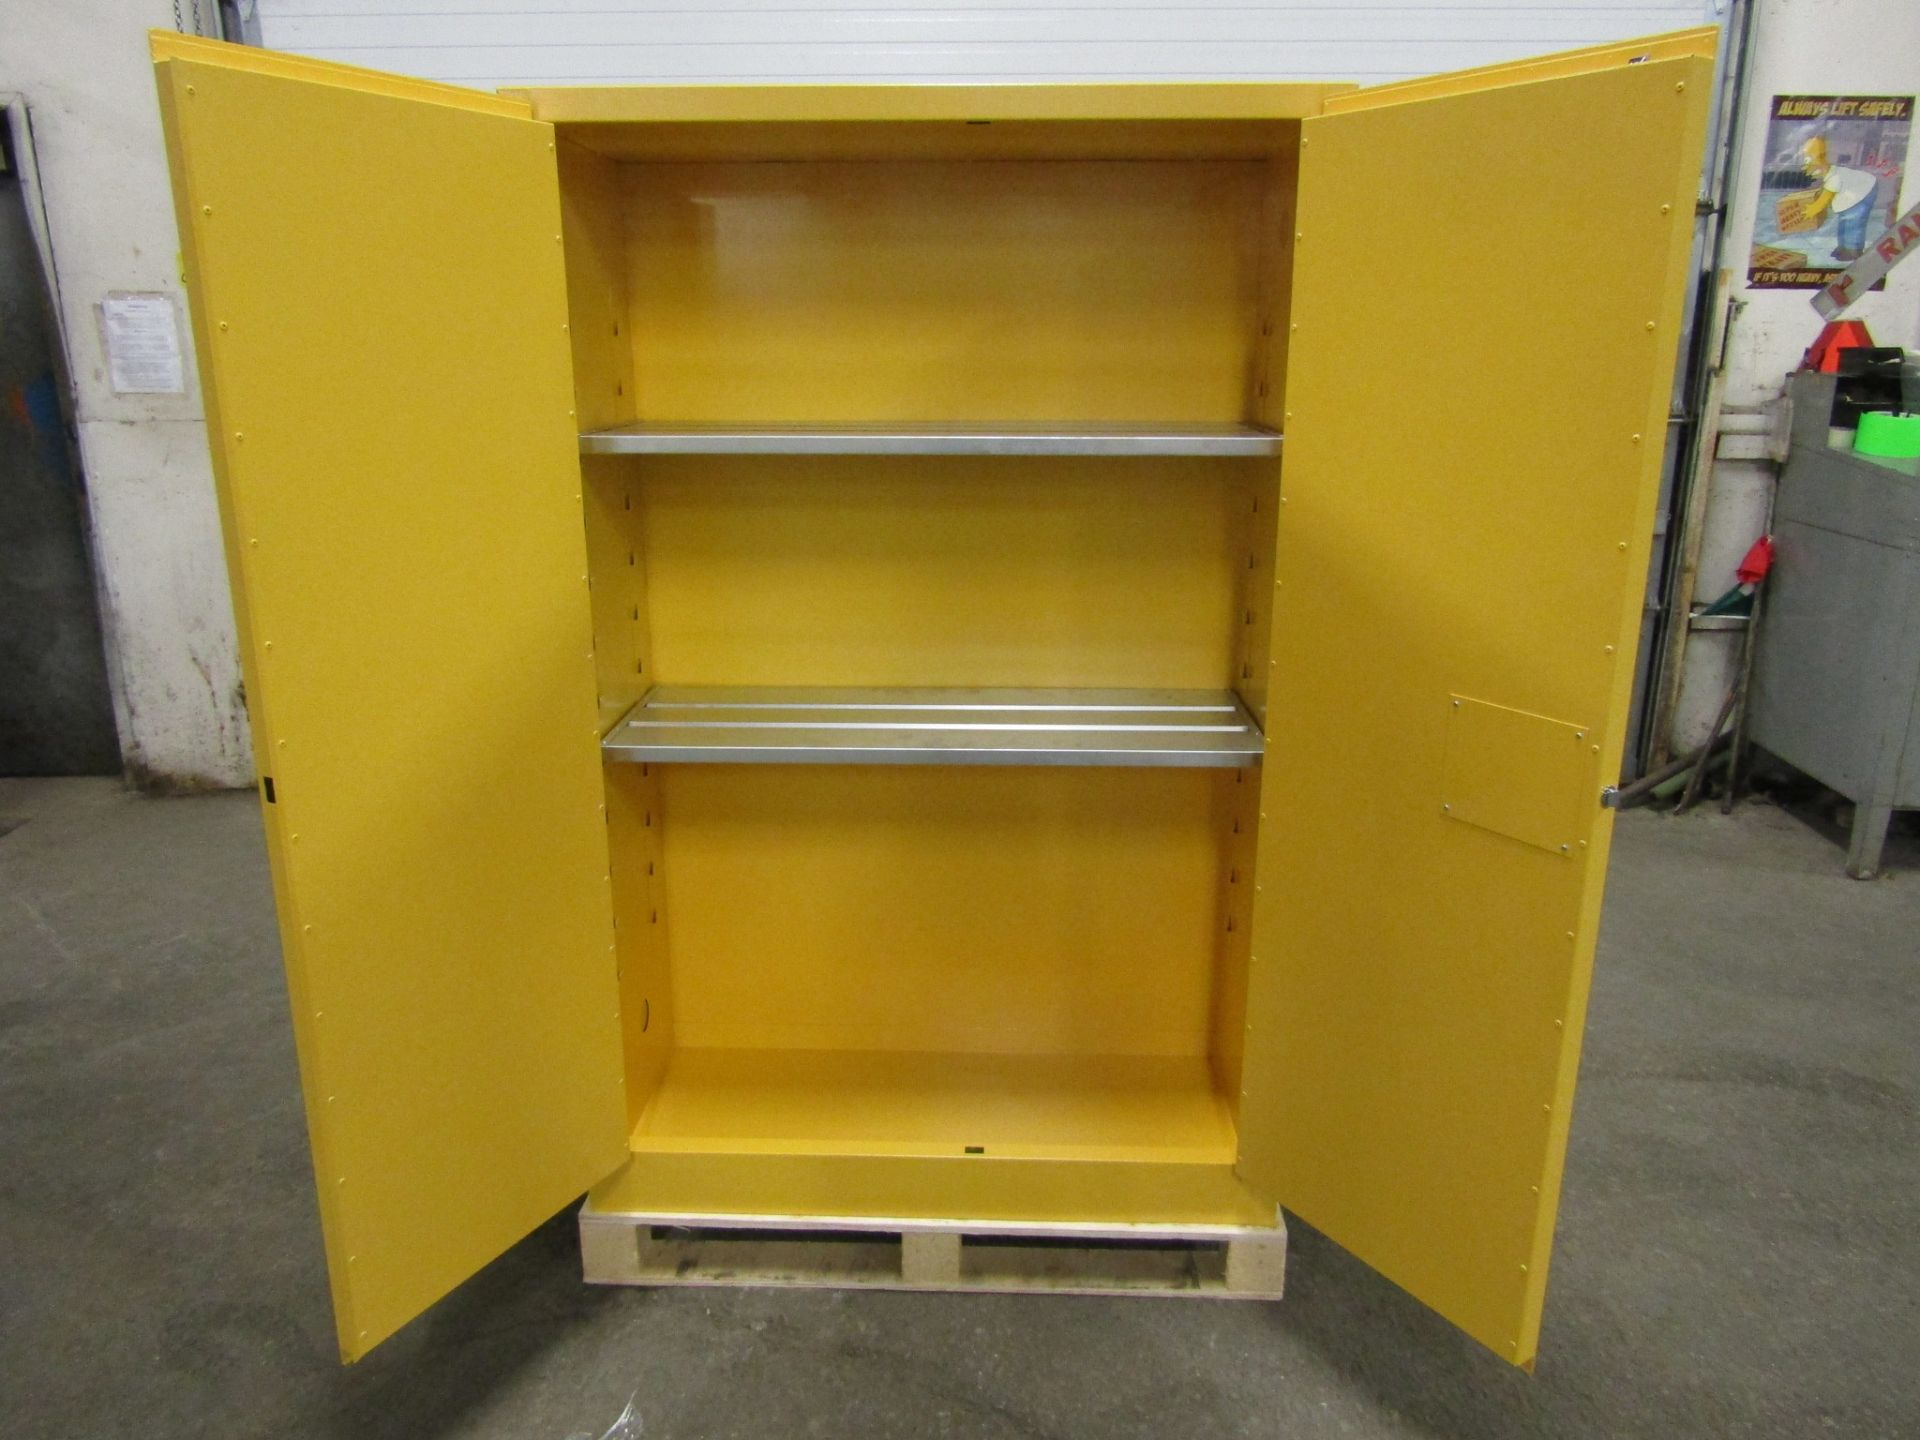 MINT Flammable Safety Fire cabinet with 2 shelves storage with LOCK - Image 2 of 2